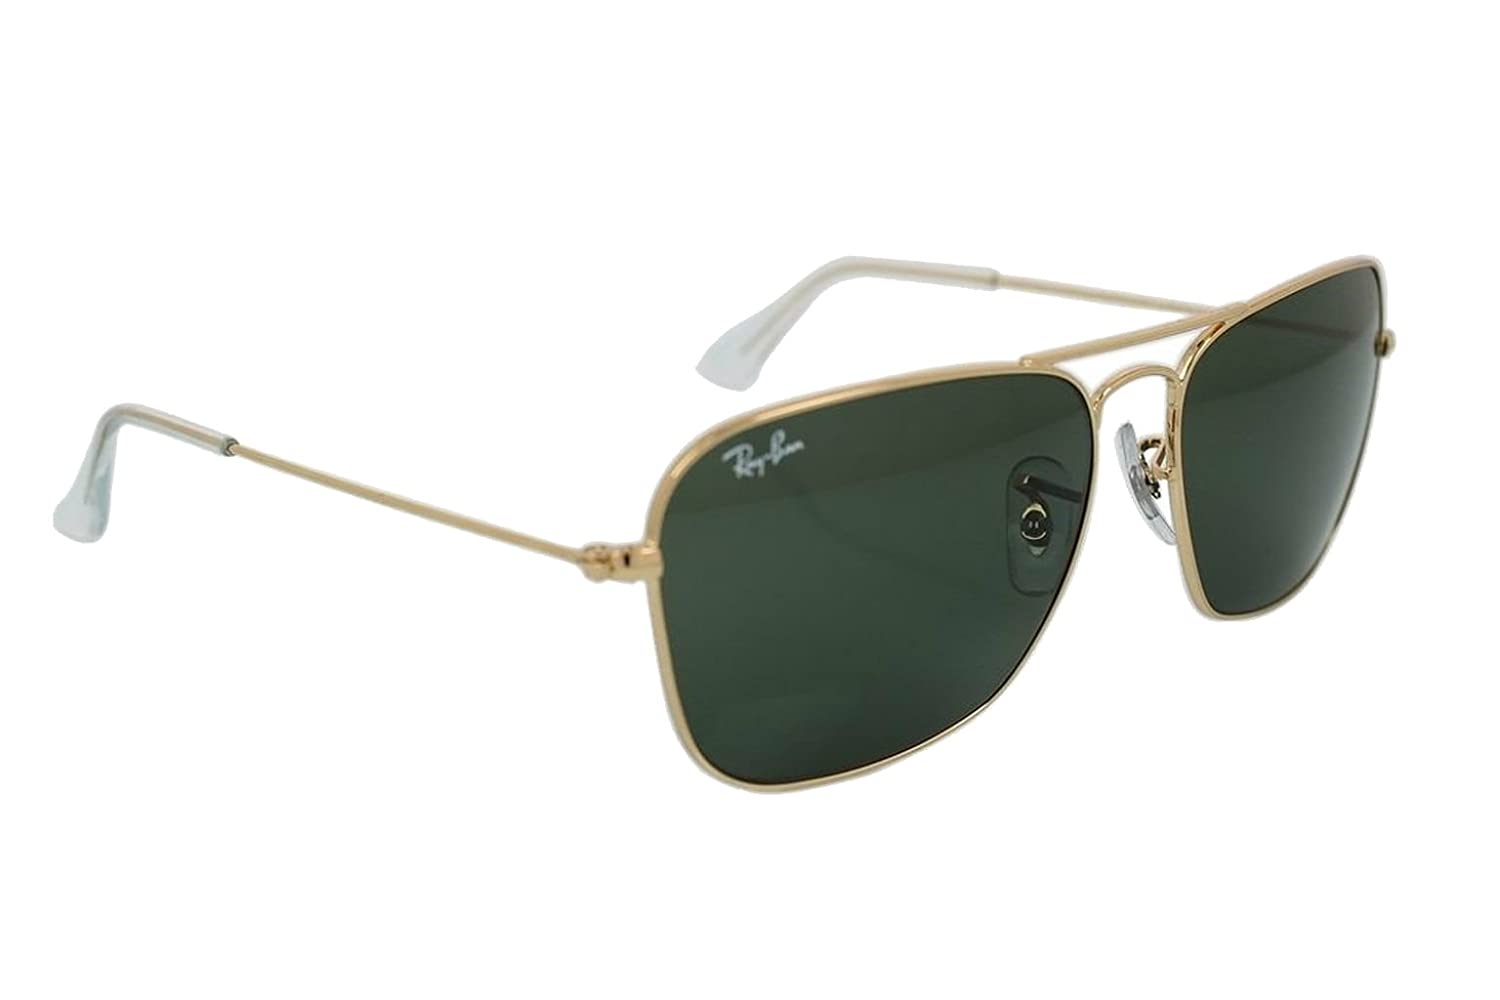 0637a71423 Ray-Ban Caravan Gold Sunglasses RB 3136 001 55mm + SD Glasses + Cleaning  Kit  Amazon.co.uk  Clothing